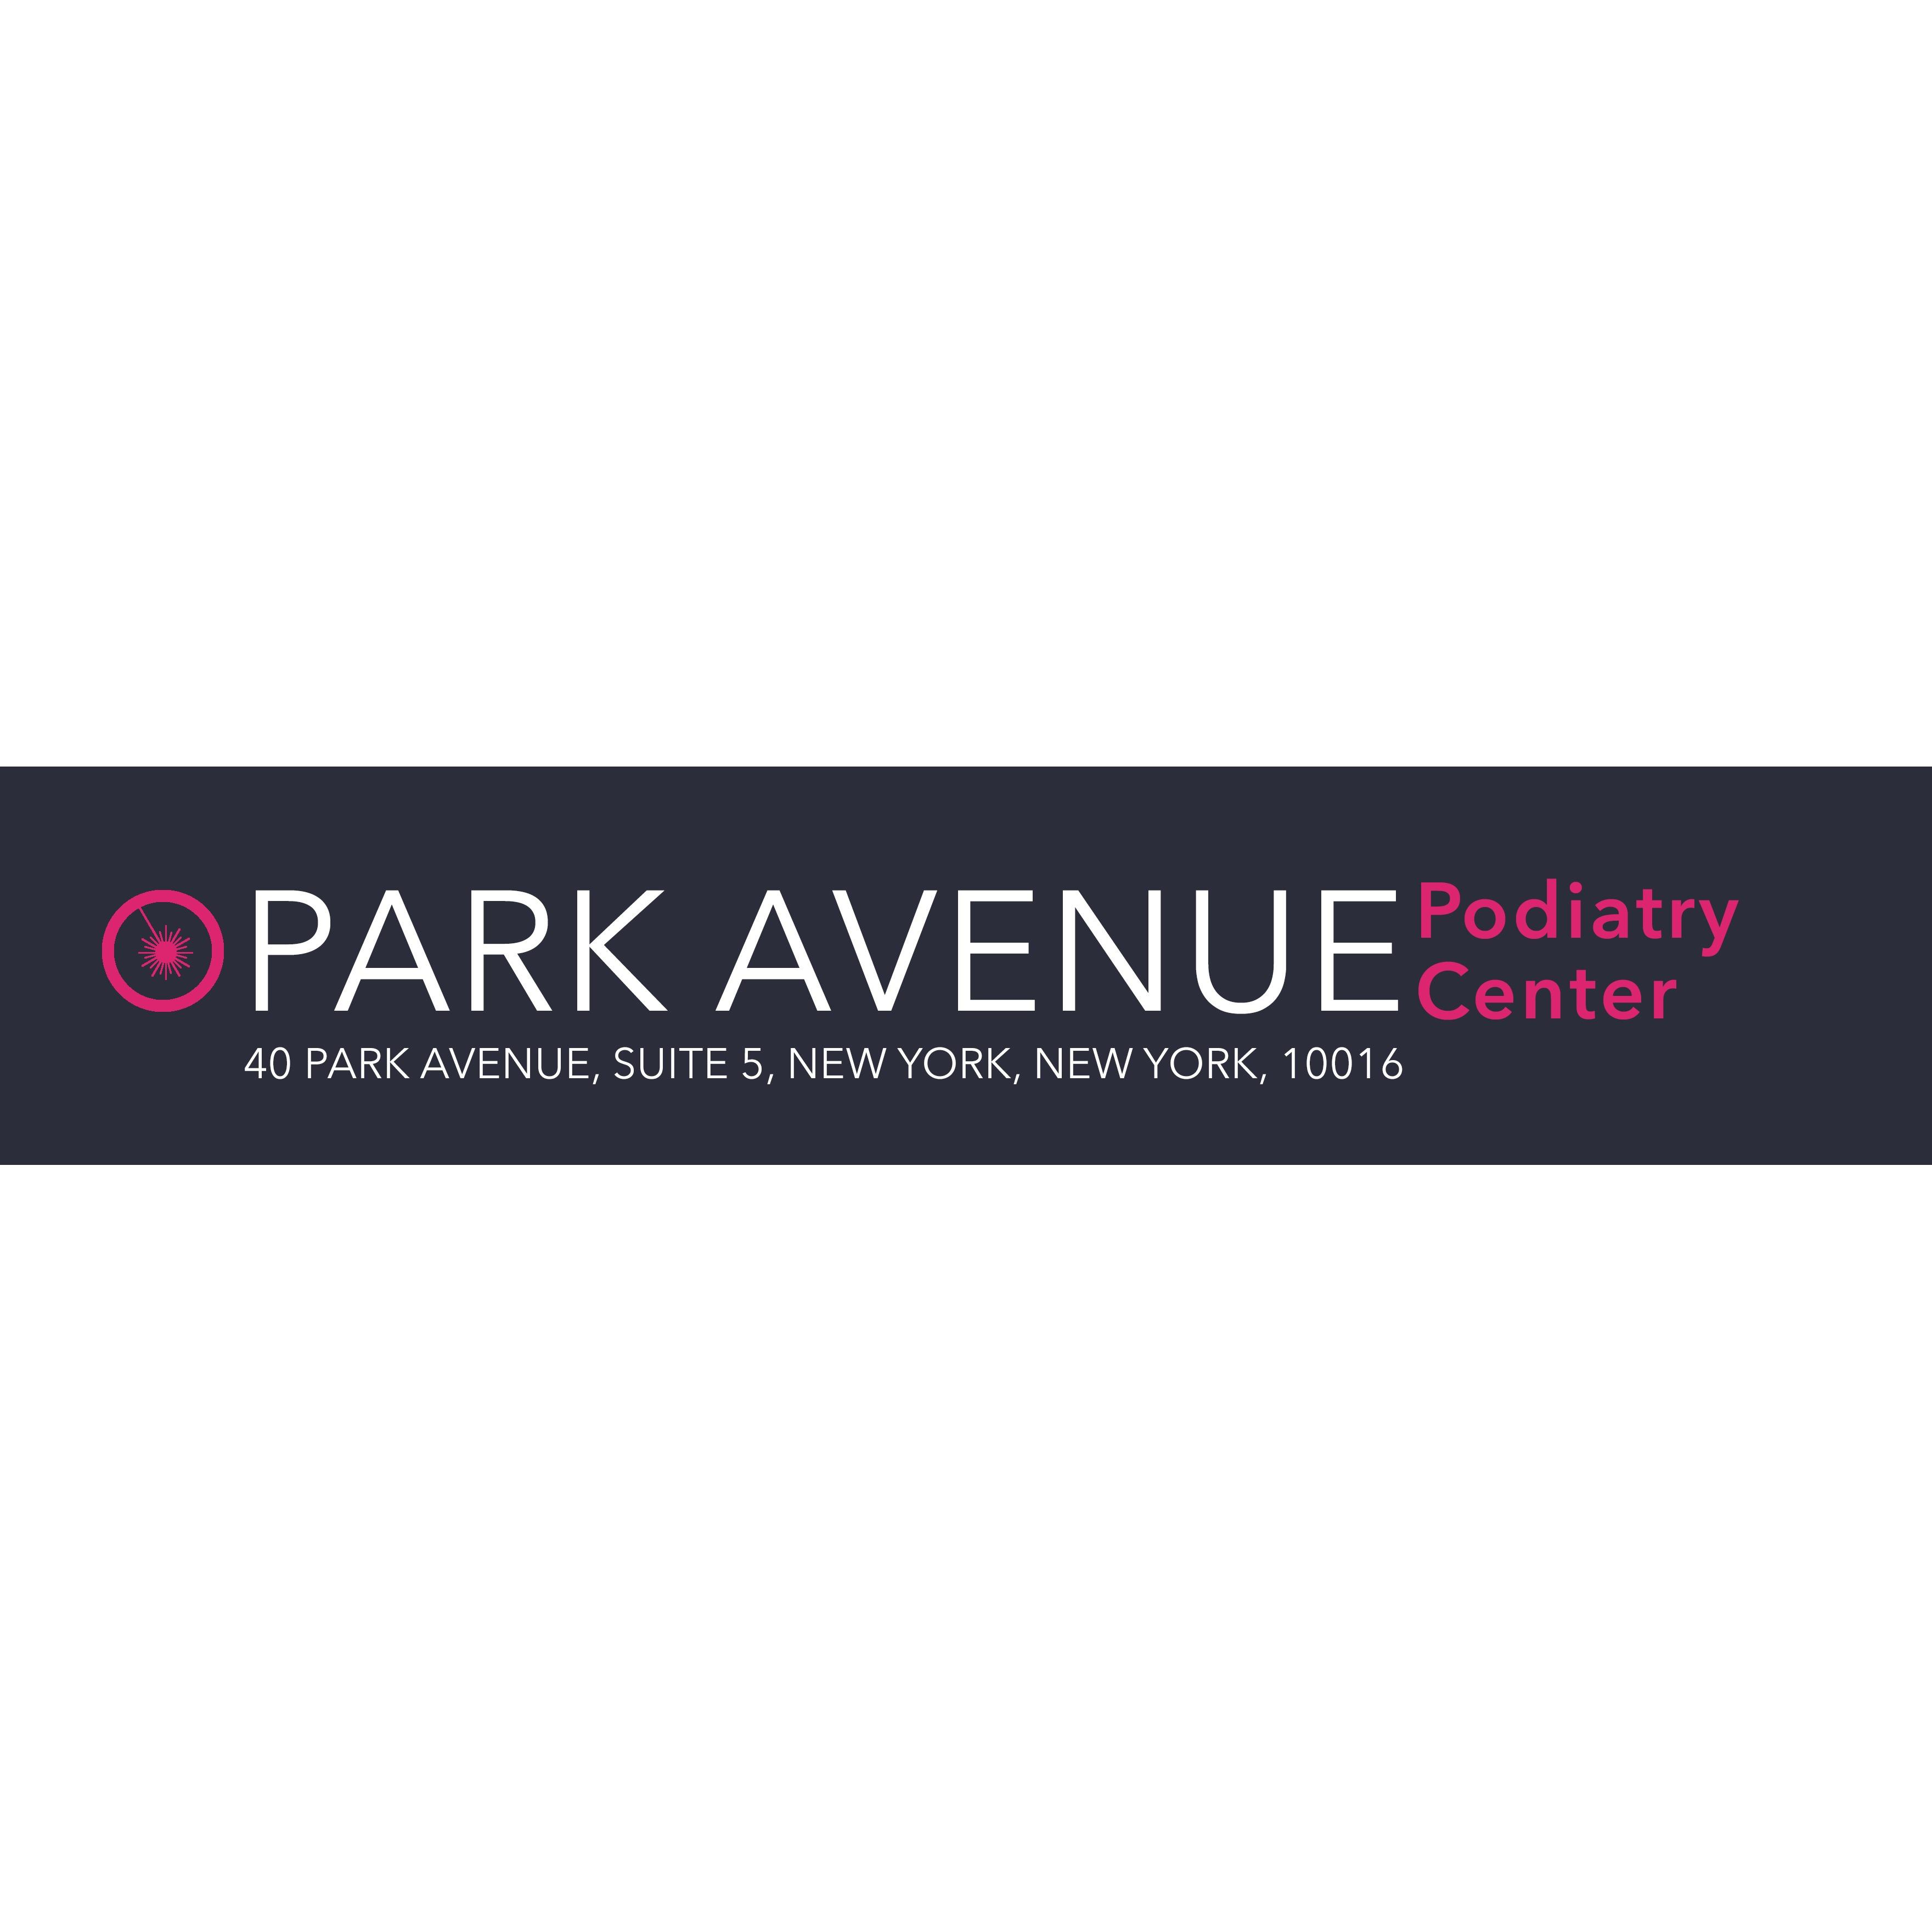 Park Avenue Podiatry Center